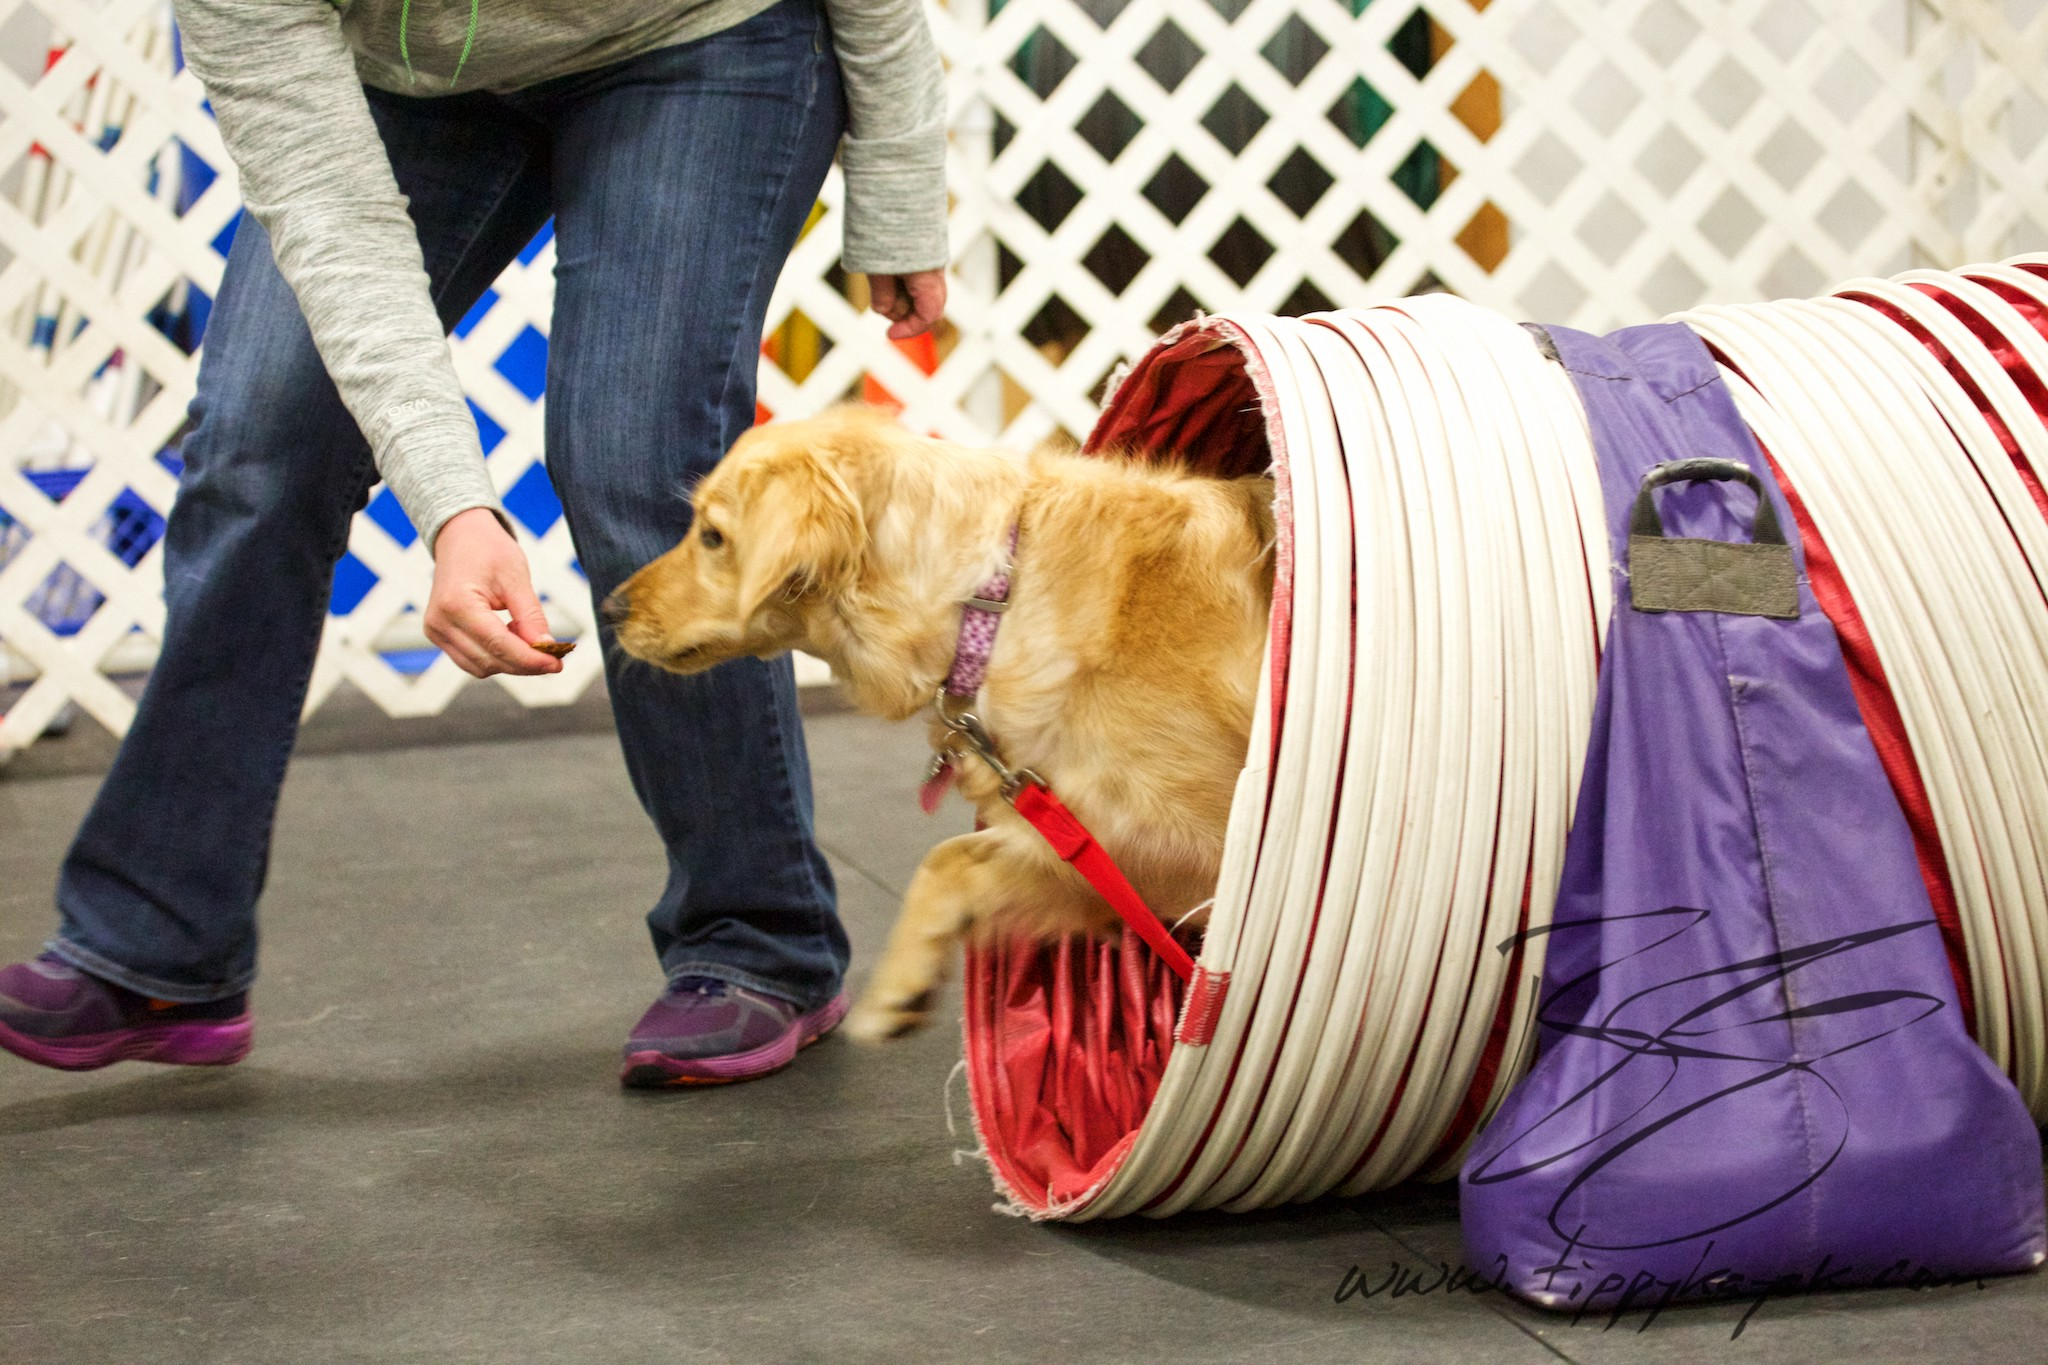 Ella was really scared of the tunnel at first, and she wouldn't go through it during her first exposure. So we just let her examine it during that session and rewarded her for checking it out. When we tried again two weeks later, we were able to build on that first experience and lure her through it with some yummy treats. Experiences like this can help teach a dog to be more confident around new and strange things.